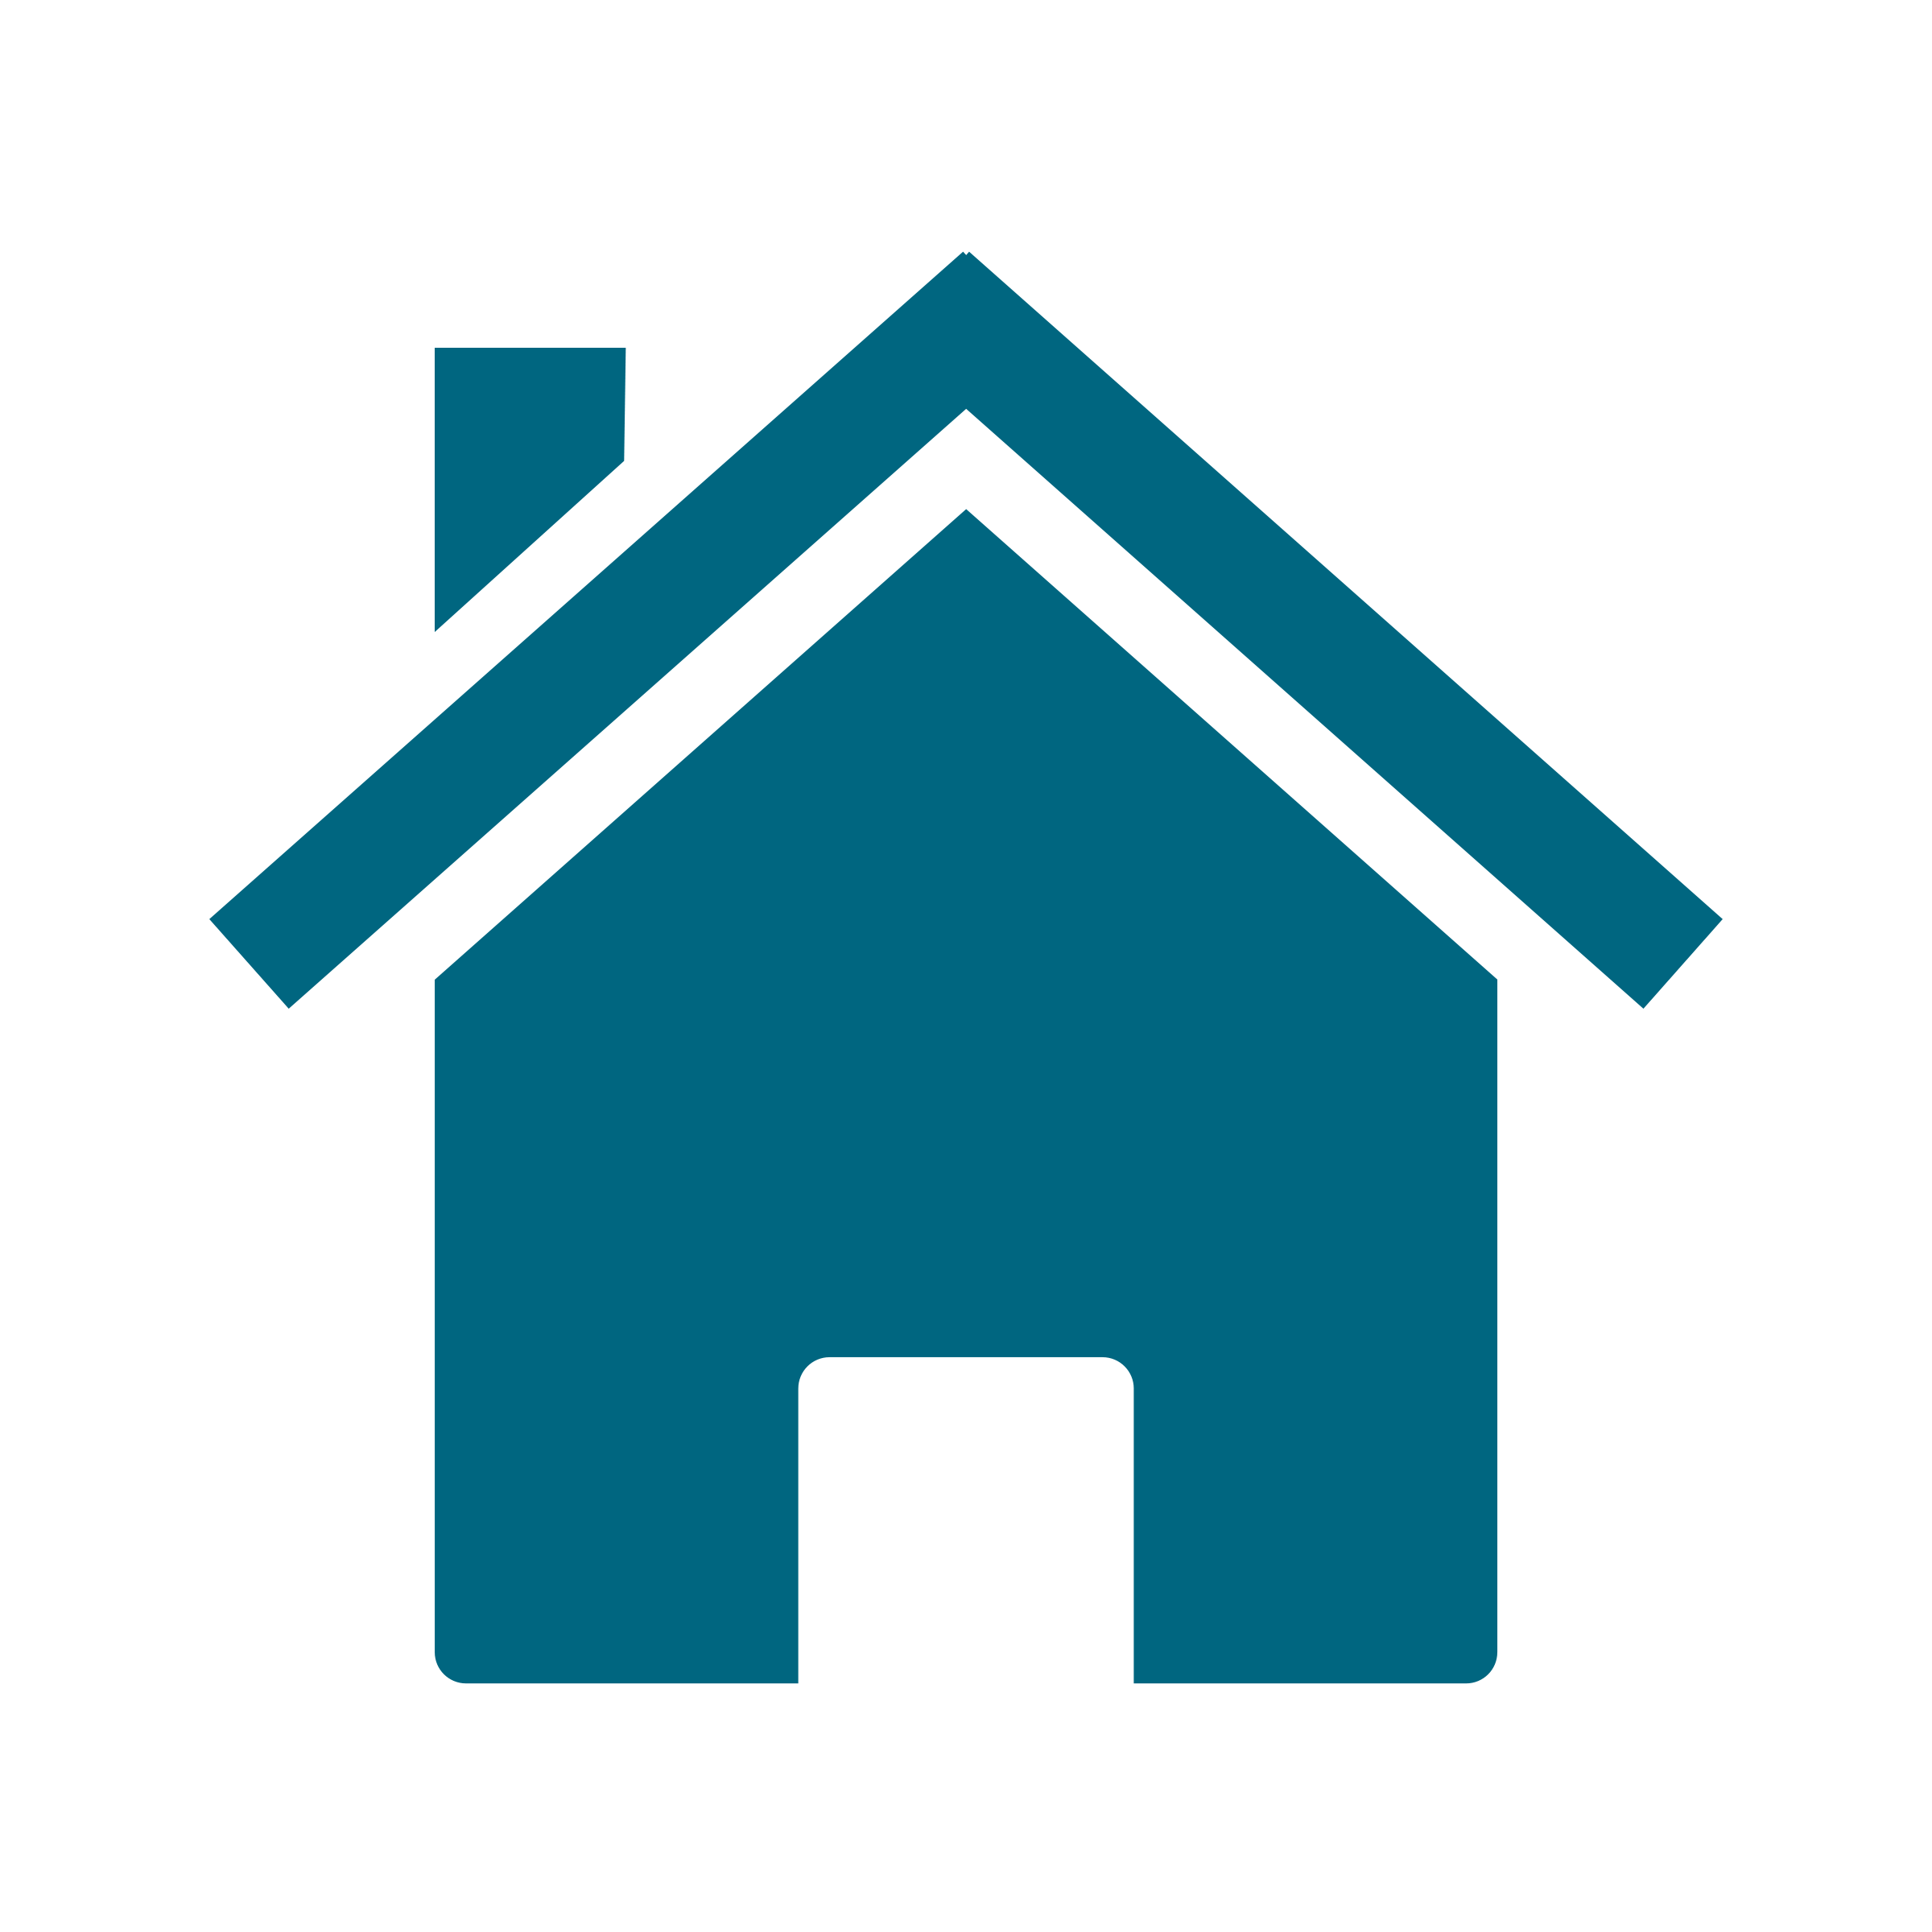 PNG HD Of Homes - 147363